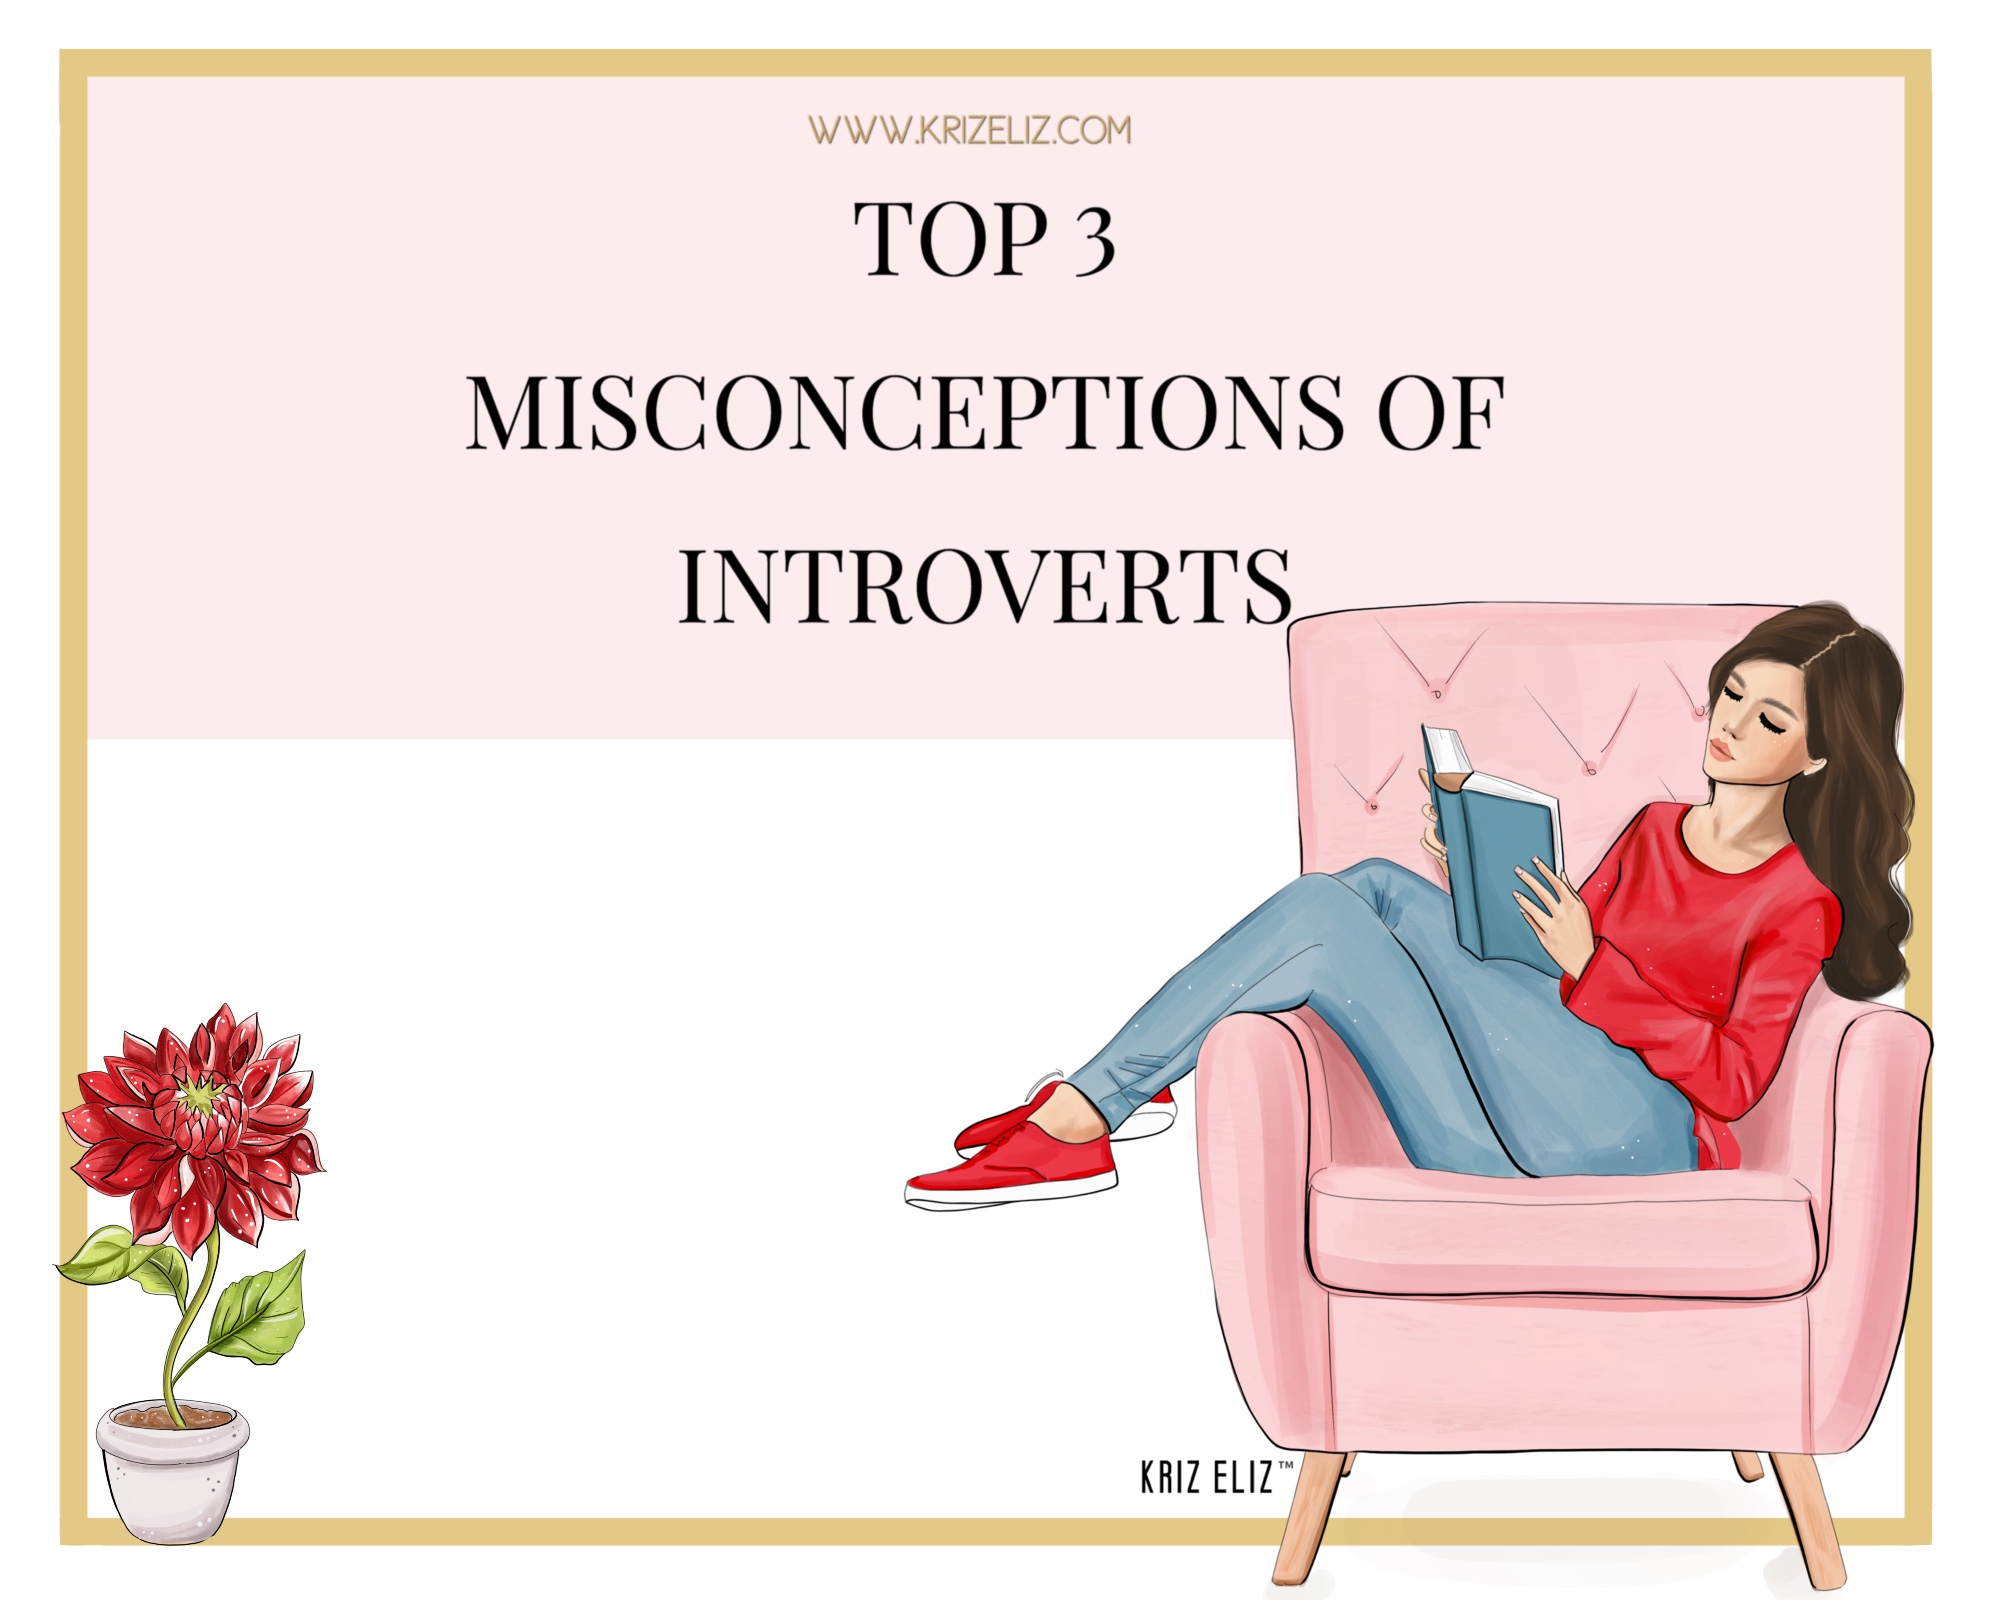 Top 3 Misconceptions of Introverts